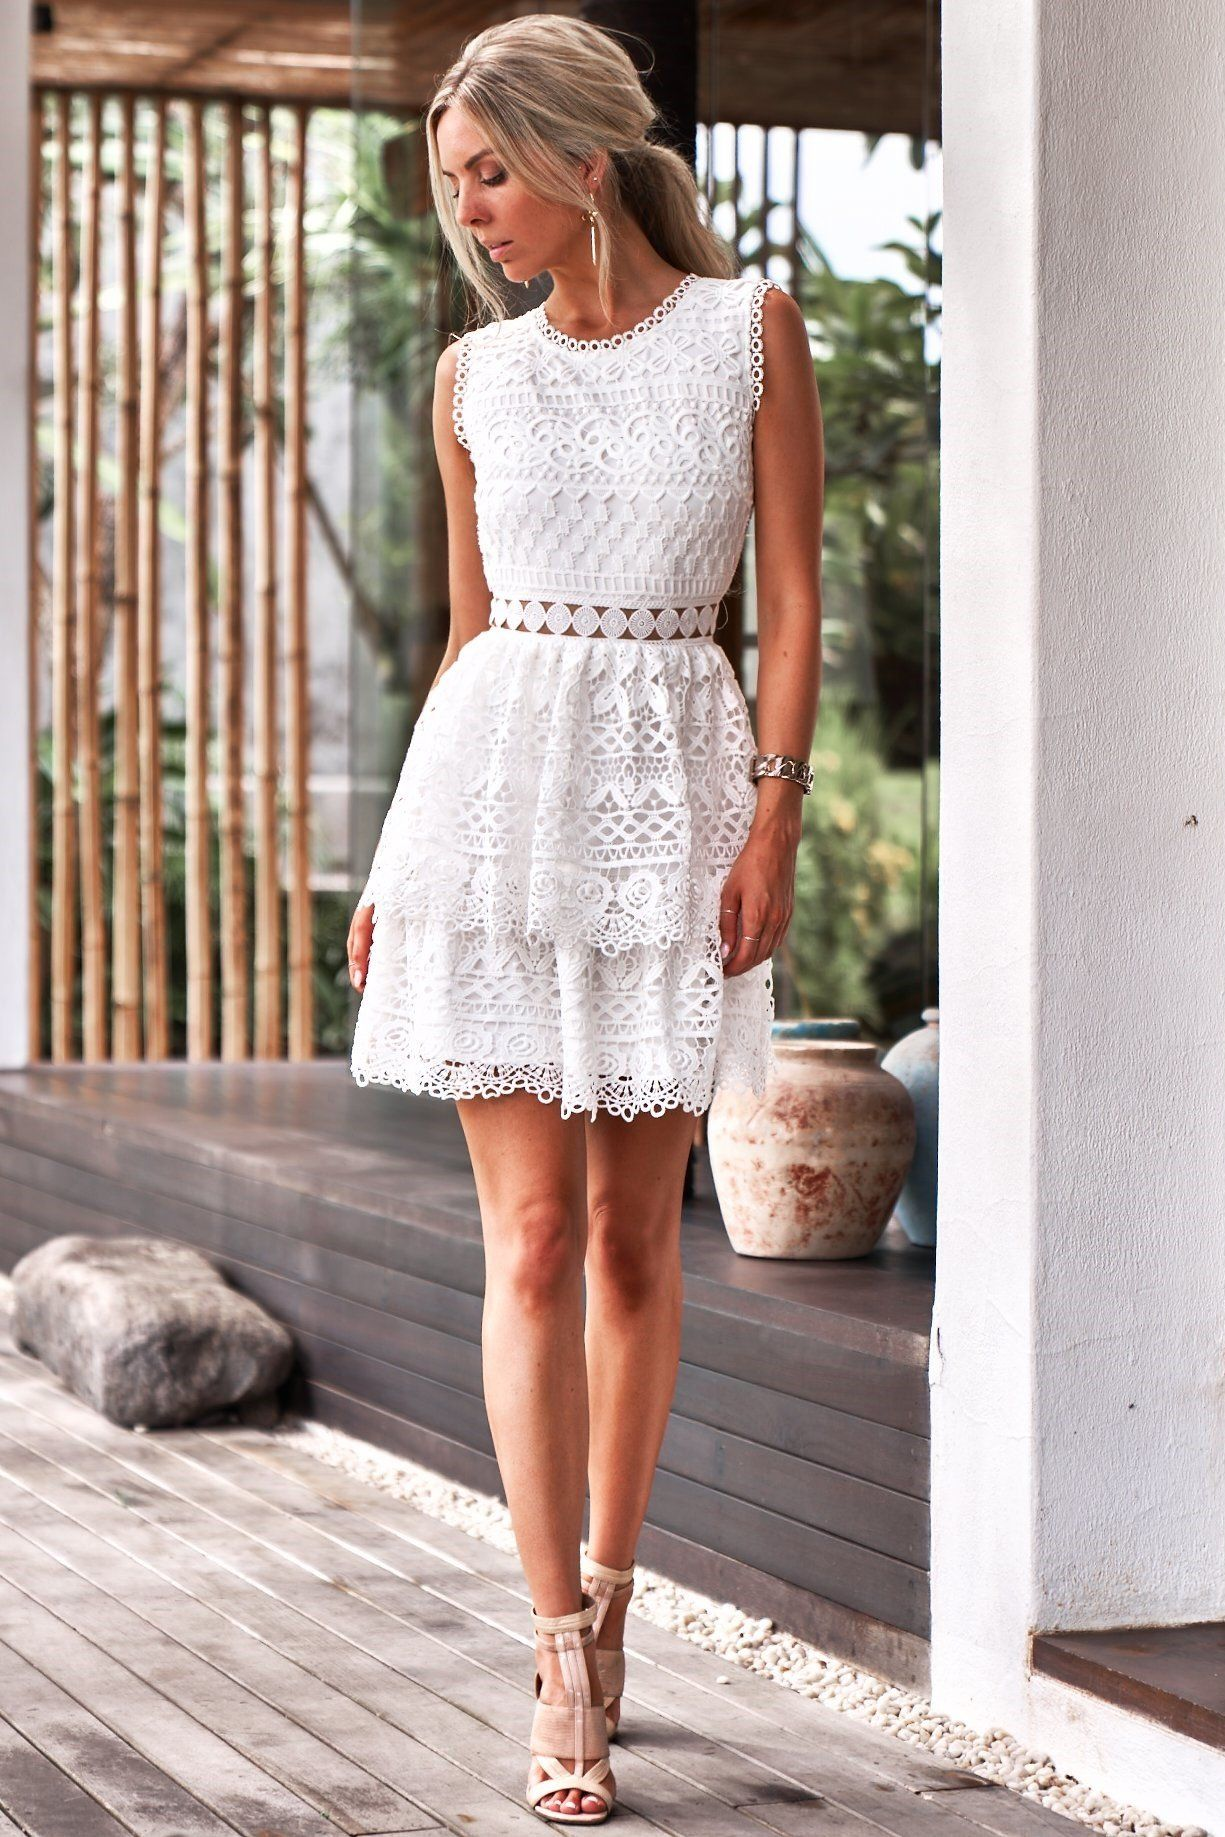 Angely Dress White In 2021 Backless Lace Dress Lace Dress Lace Homecoming Dresses [ 1837 x 1225 Pixel ]